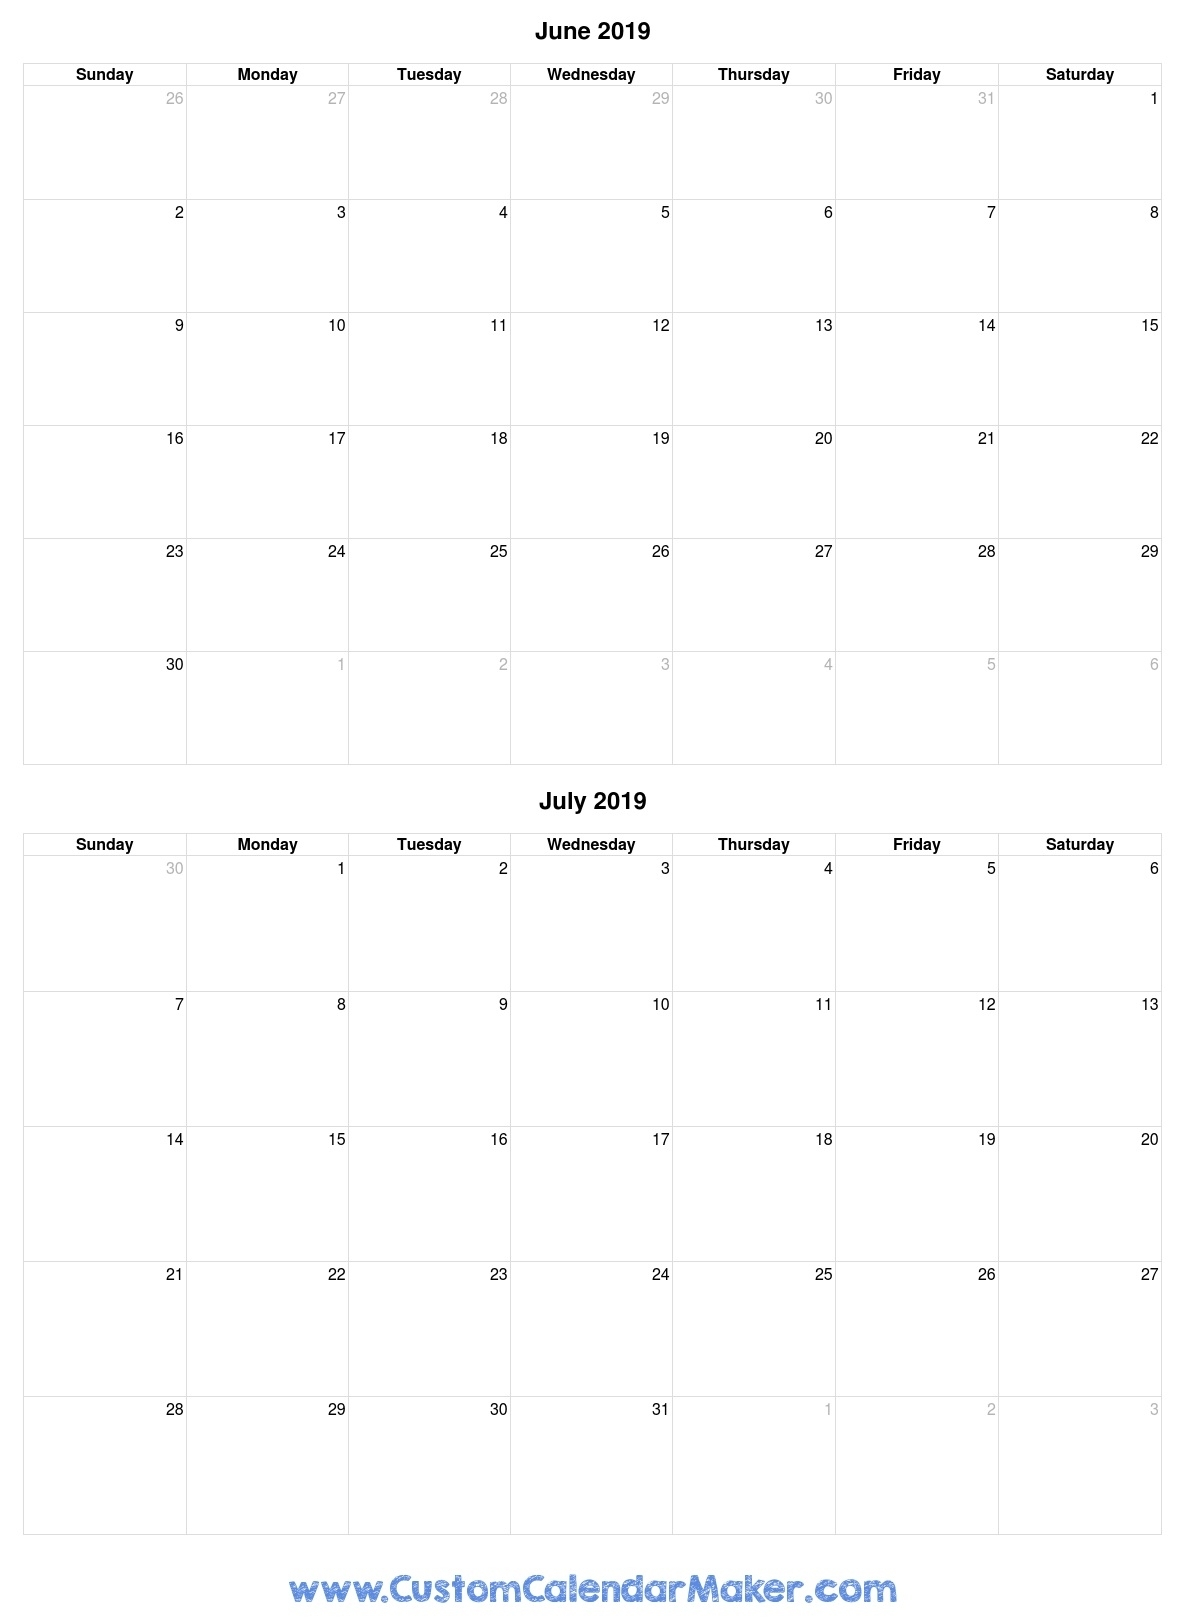 June And July 2019 Free Printable Calendar Template throughout Calender For June And July